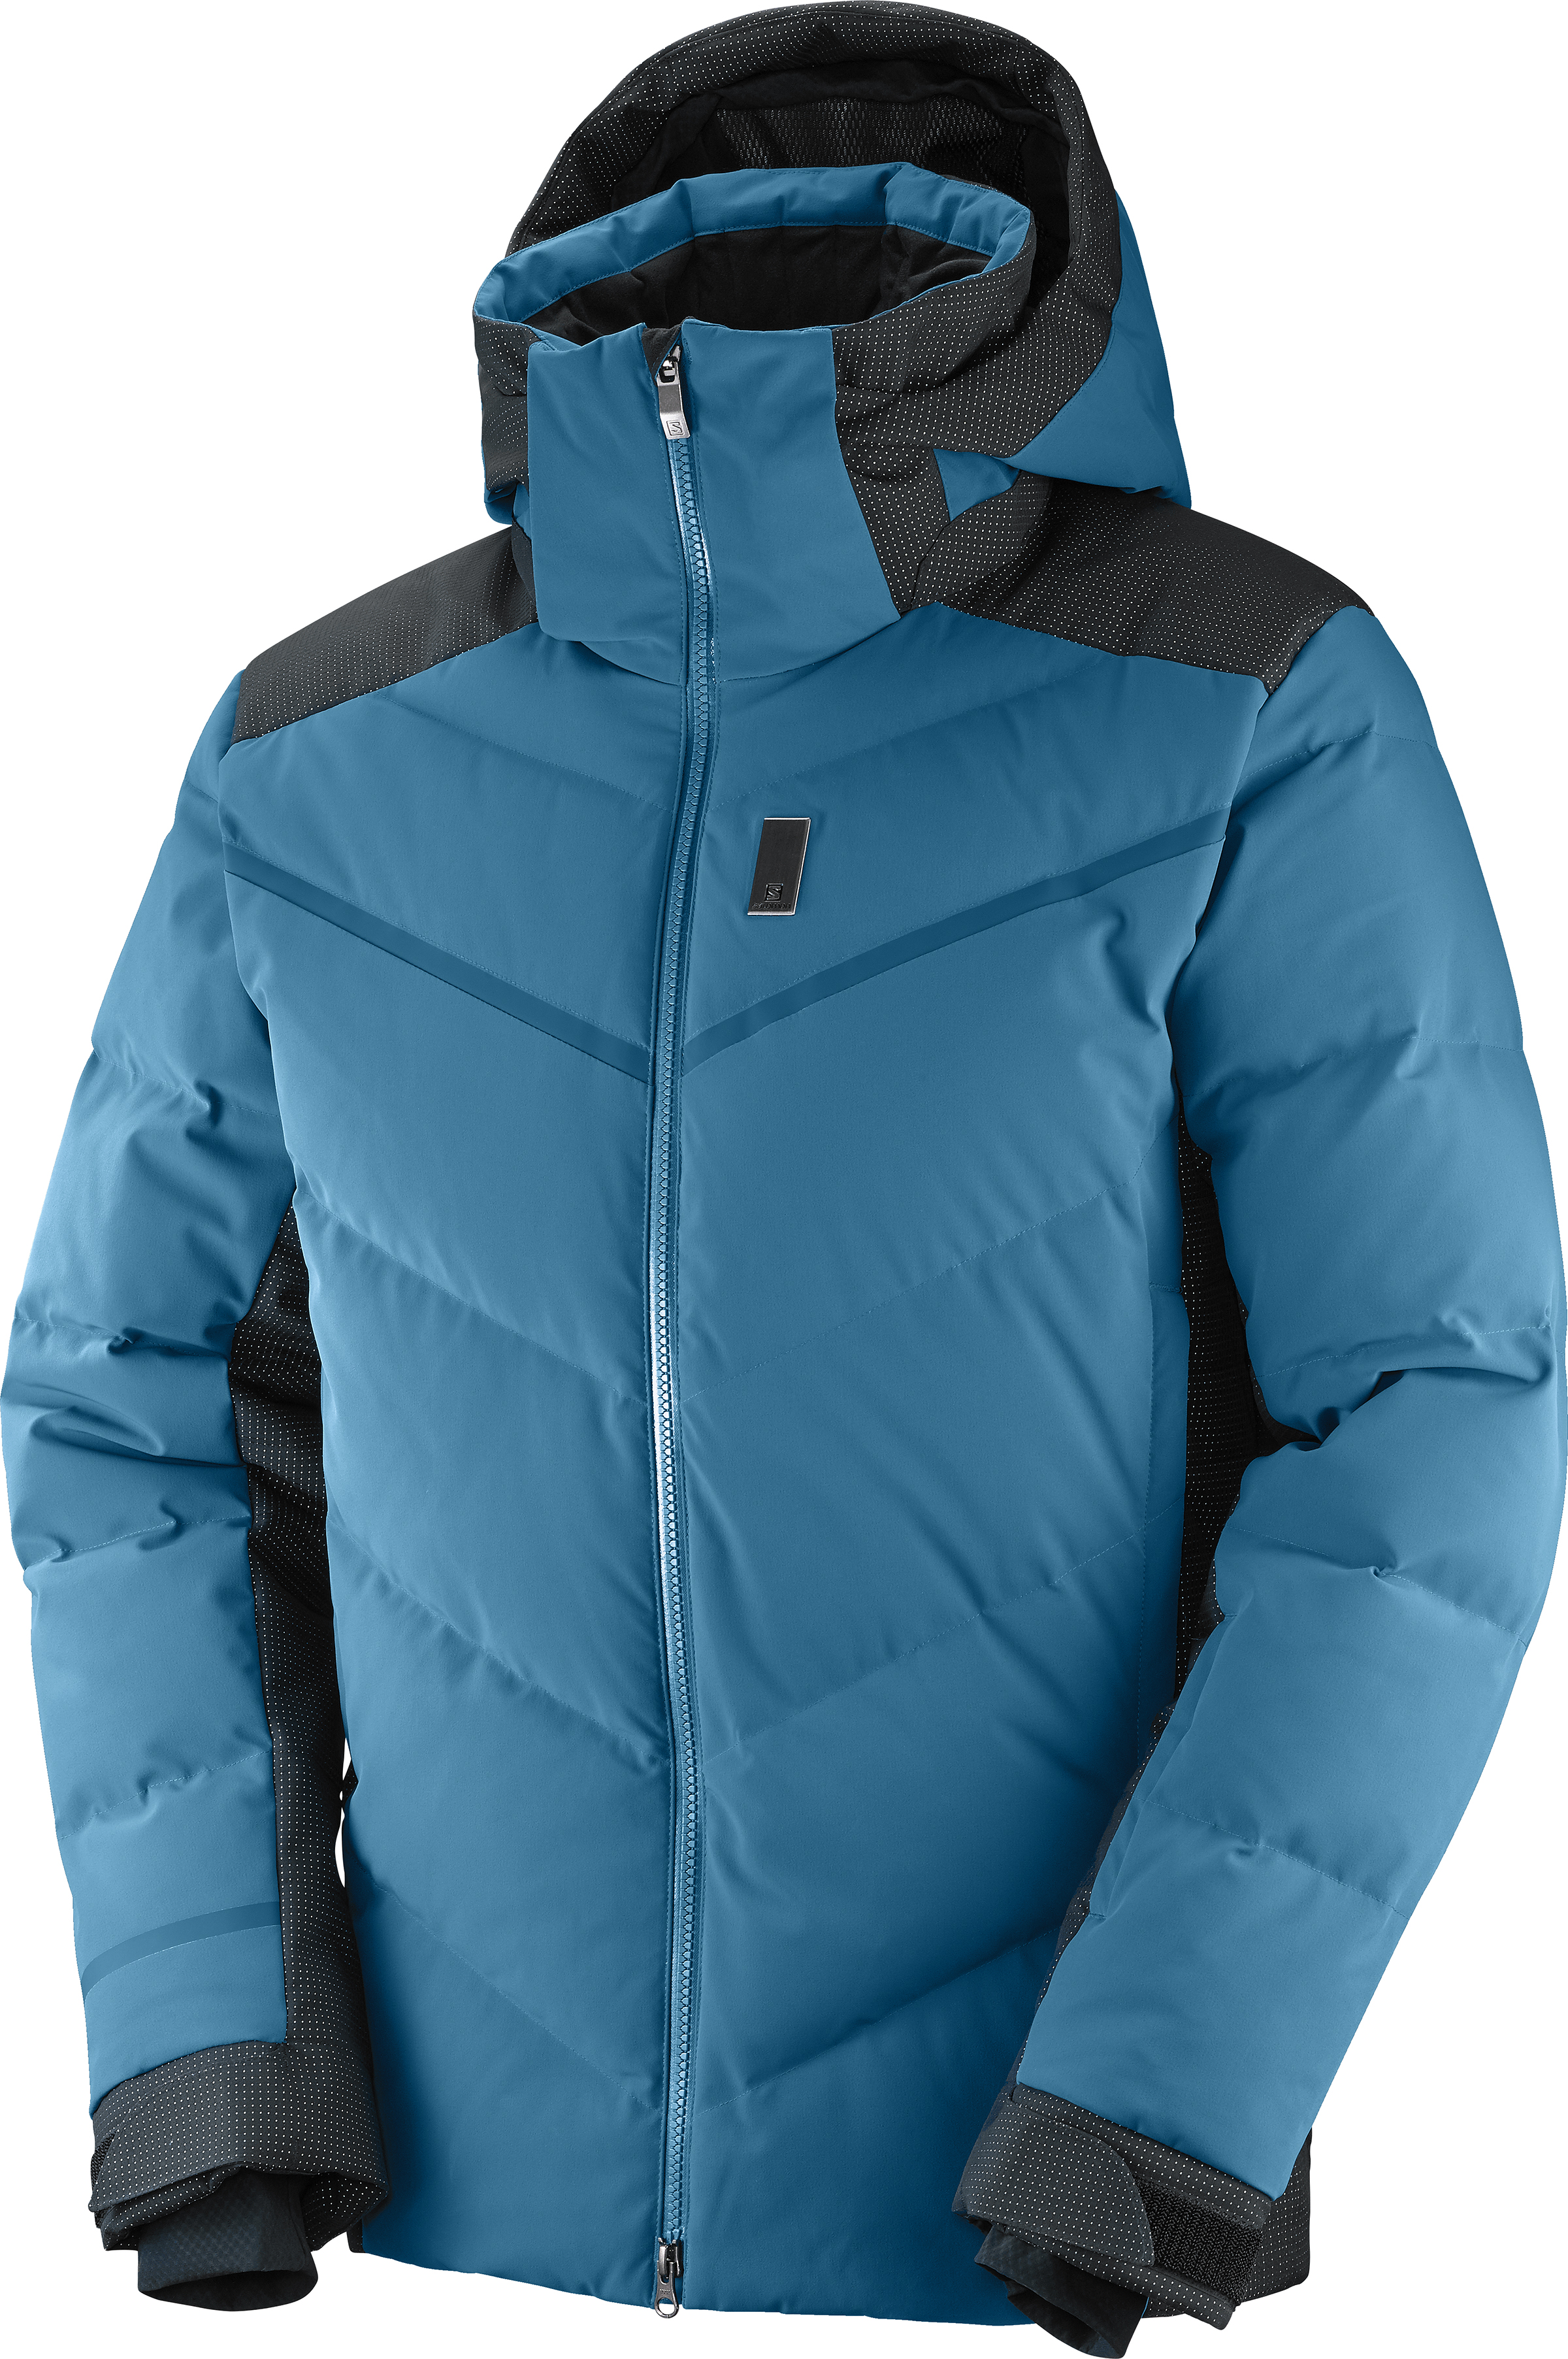 Куртка горнолыжная SALOMON Whitebreeze Down JKT M Moroccan Blue Bk (18 19) 3d8dcec707ca0